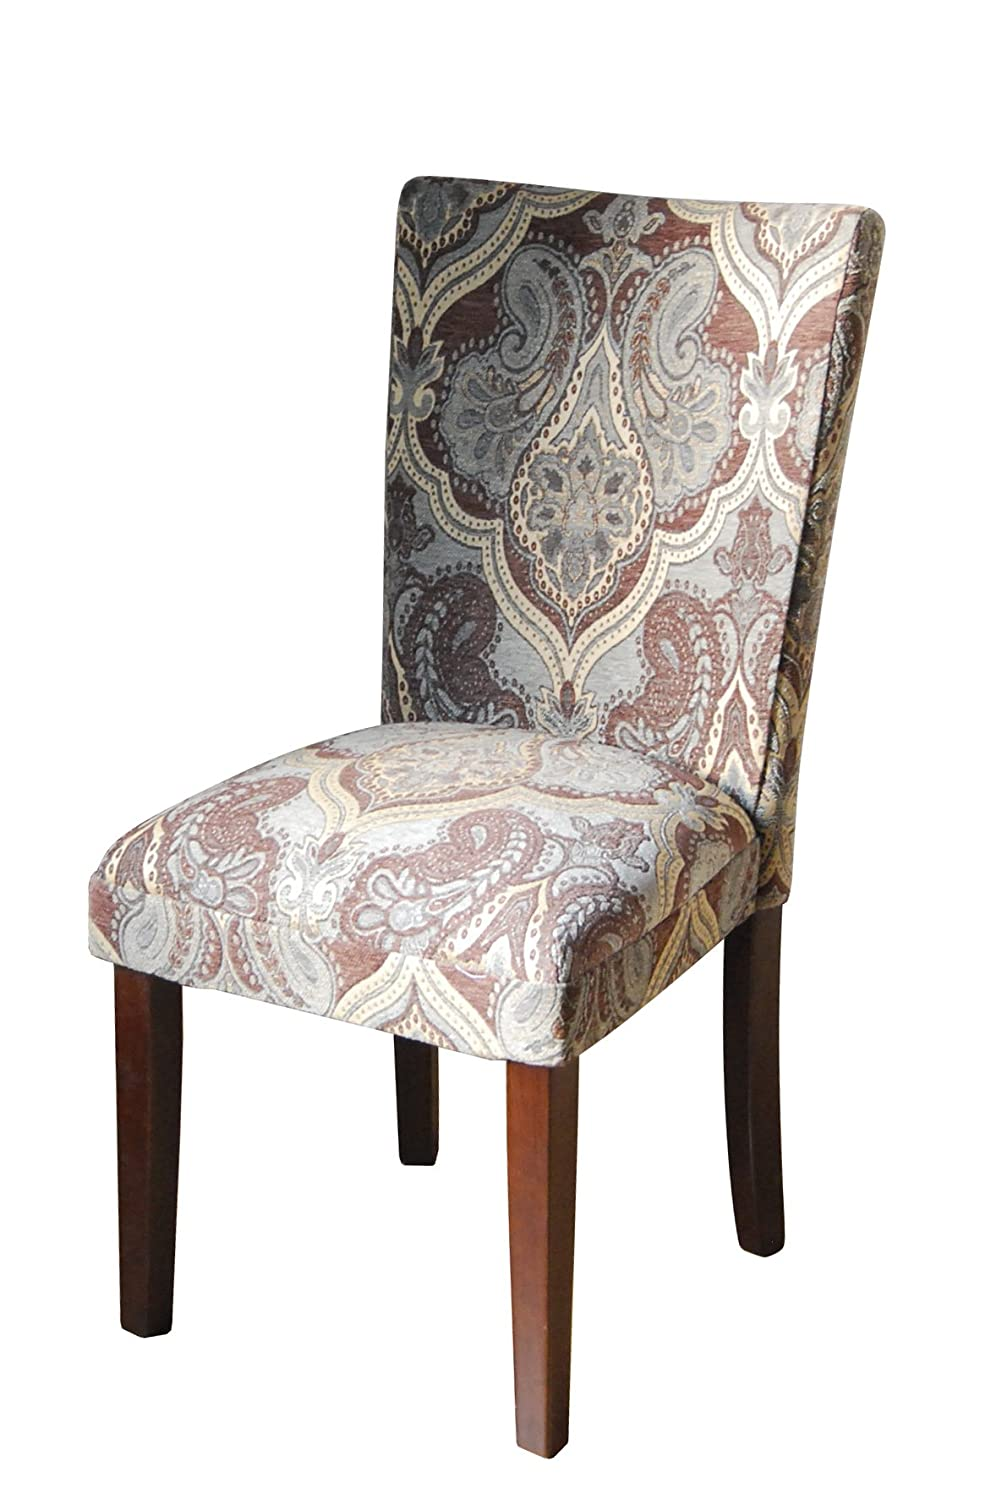 A Straight Back Upholstered Chair Turns Kitchen Dining Chairs Into Elegant  Seating. Get Not One Parsons Chair, ...